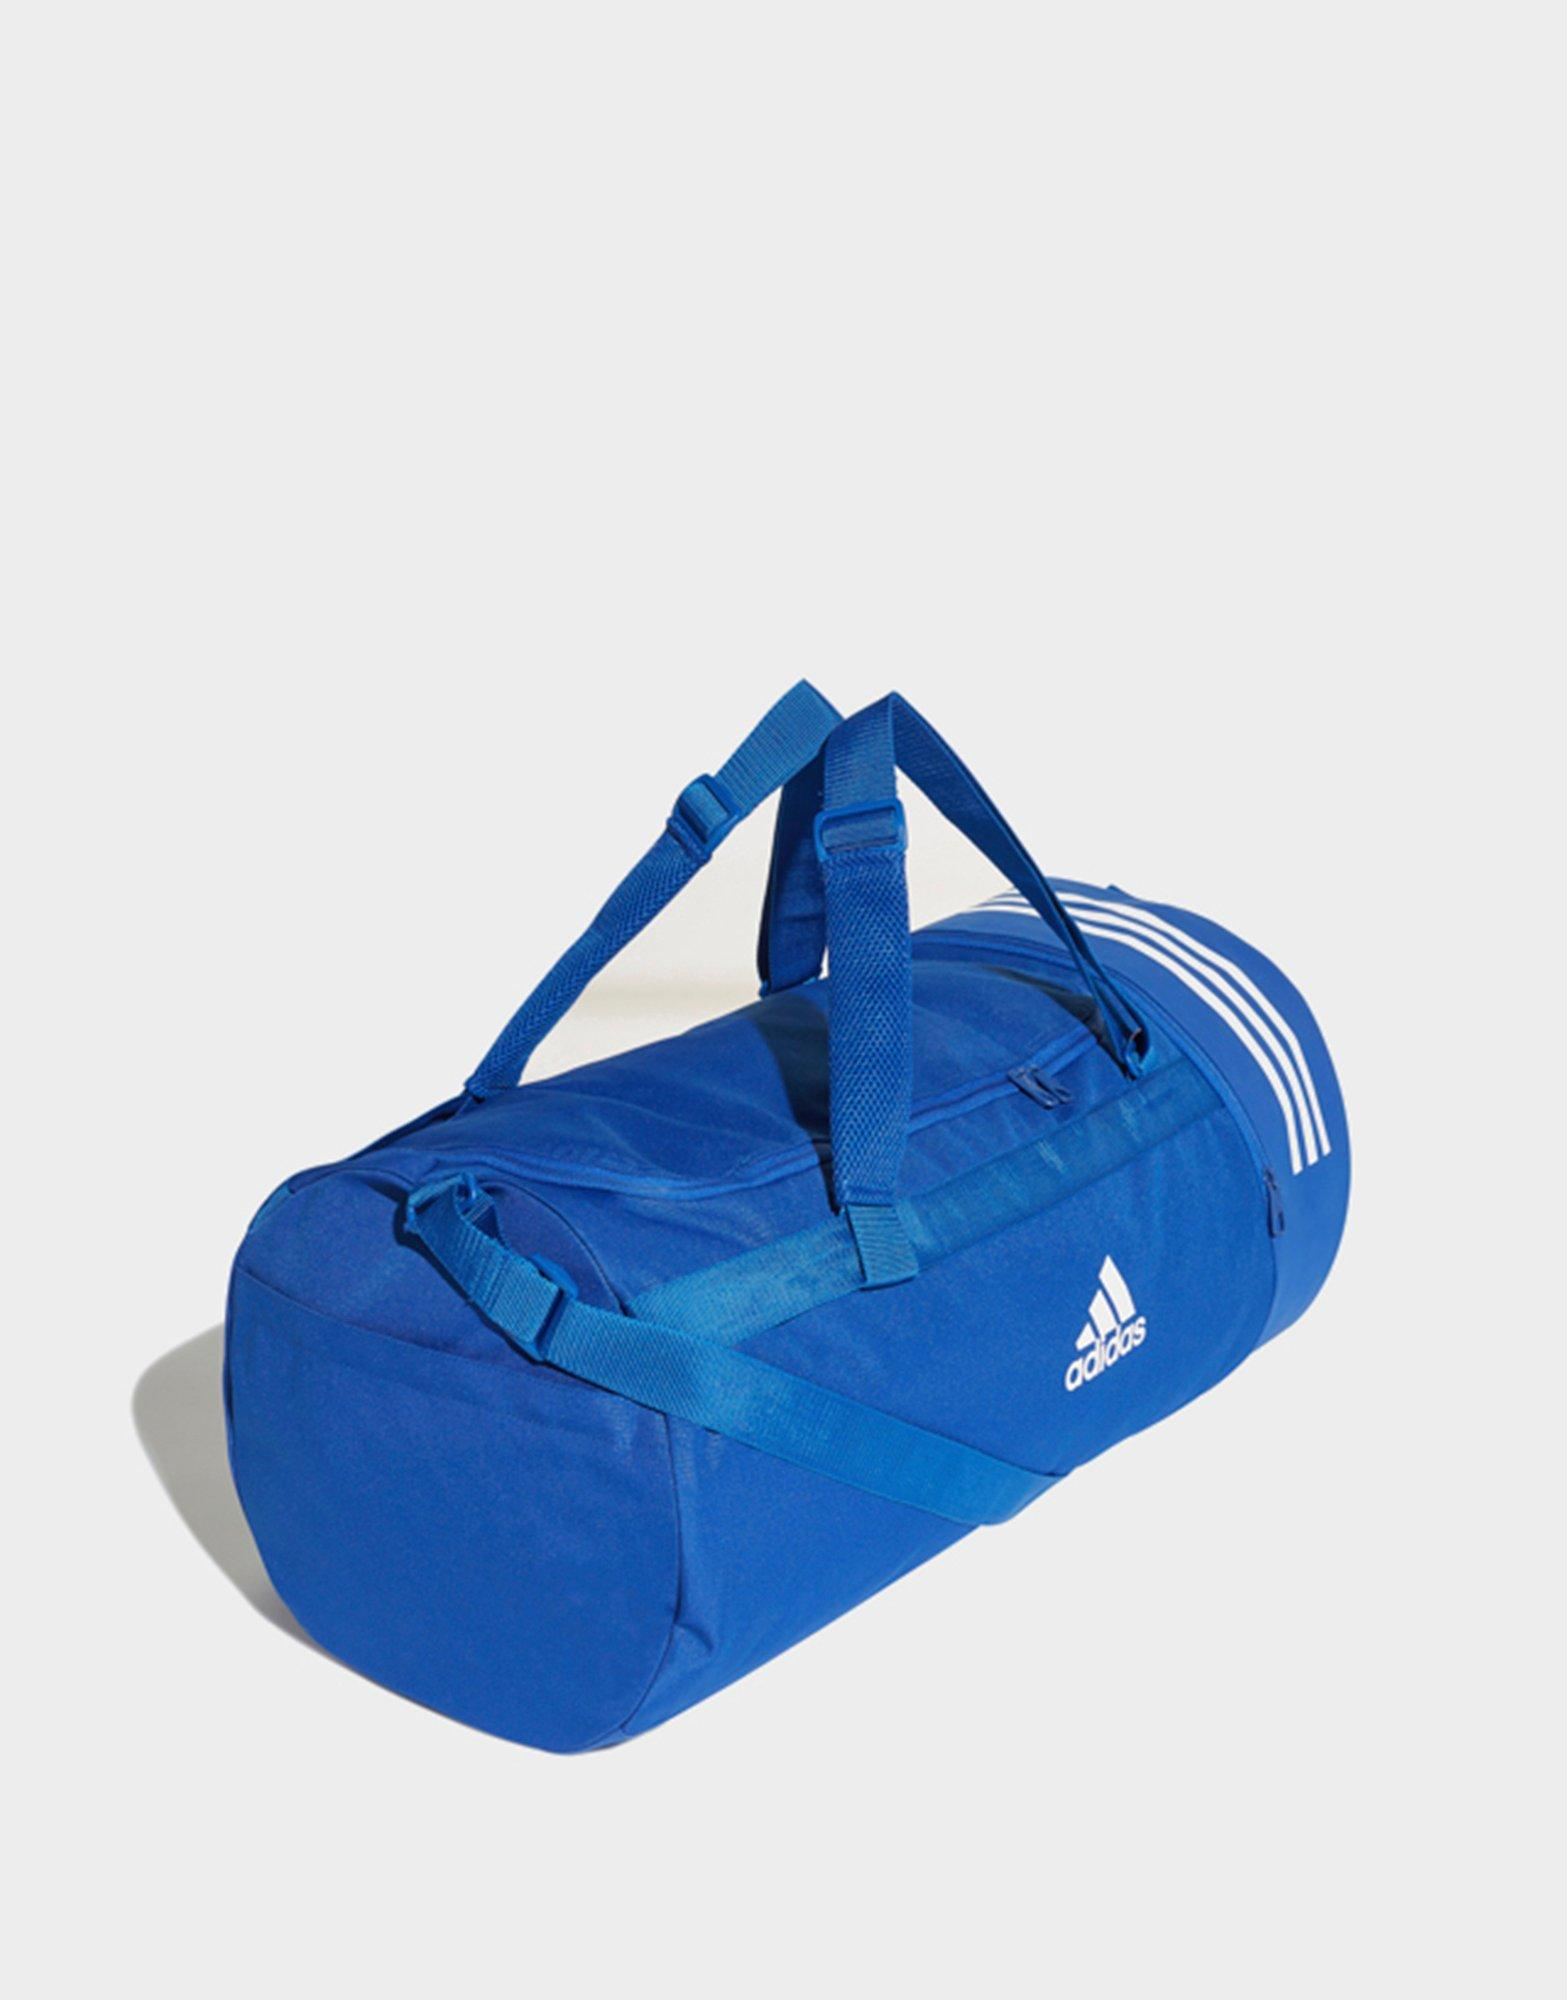 9531e02e1c8 ... Lyst - Adidas Convertible 3-stripes Duffel Bag Large in Blue 100% high  quality ...